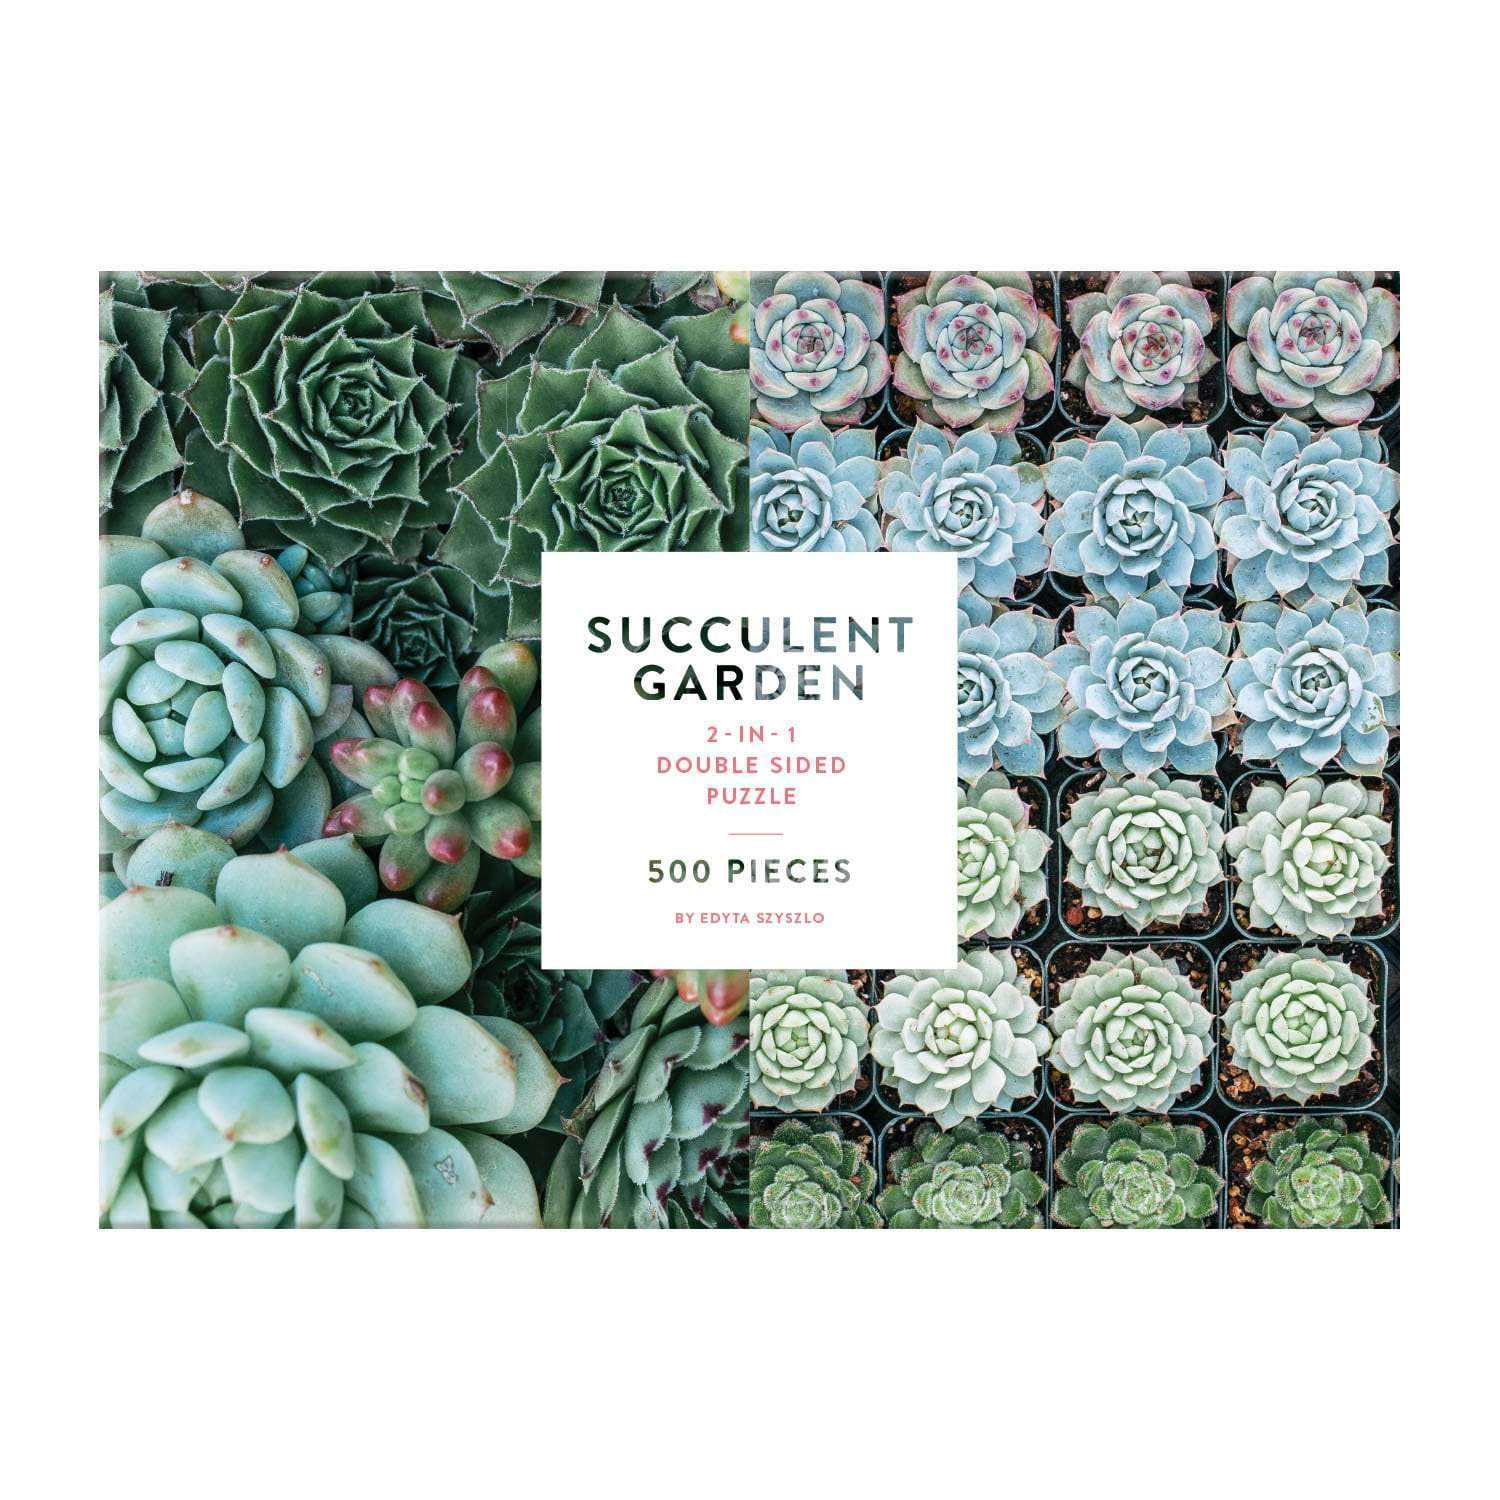 Succulent Garden Double Sided Puzzle